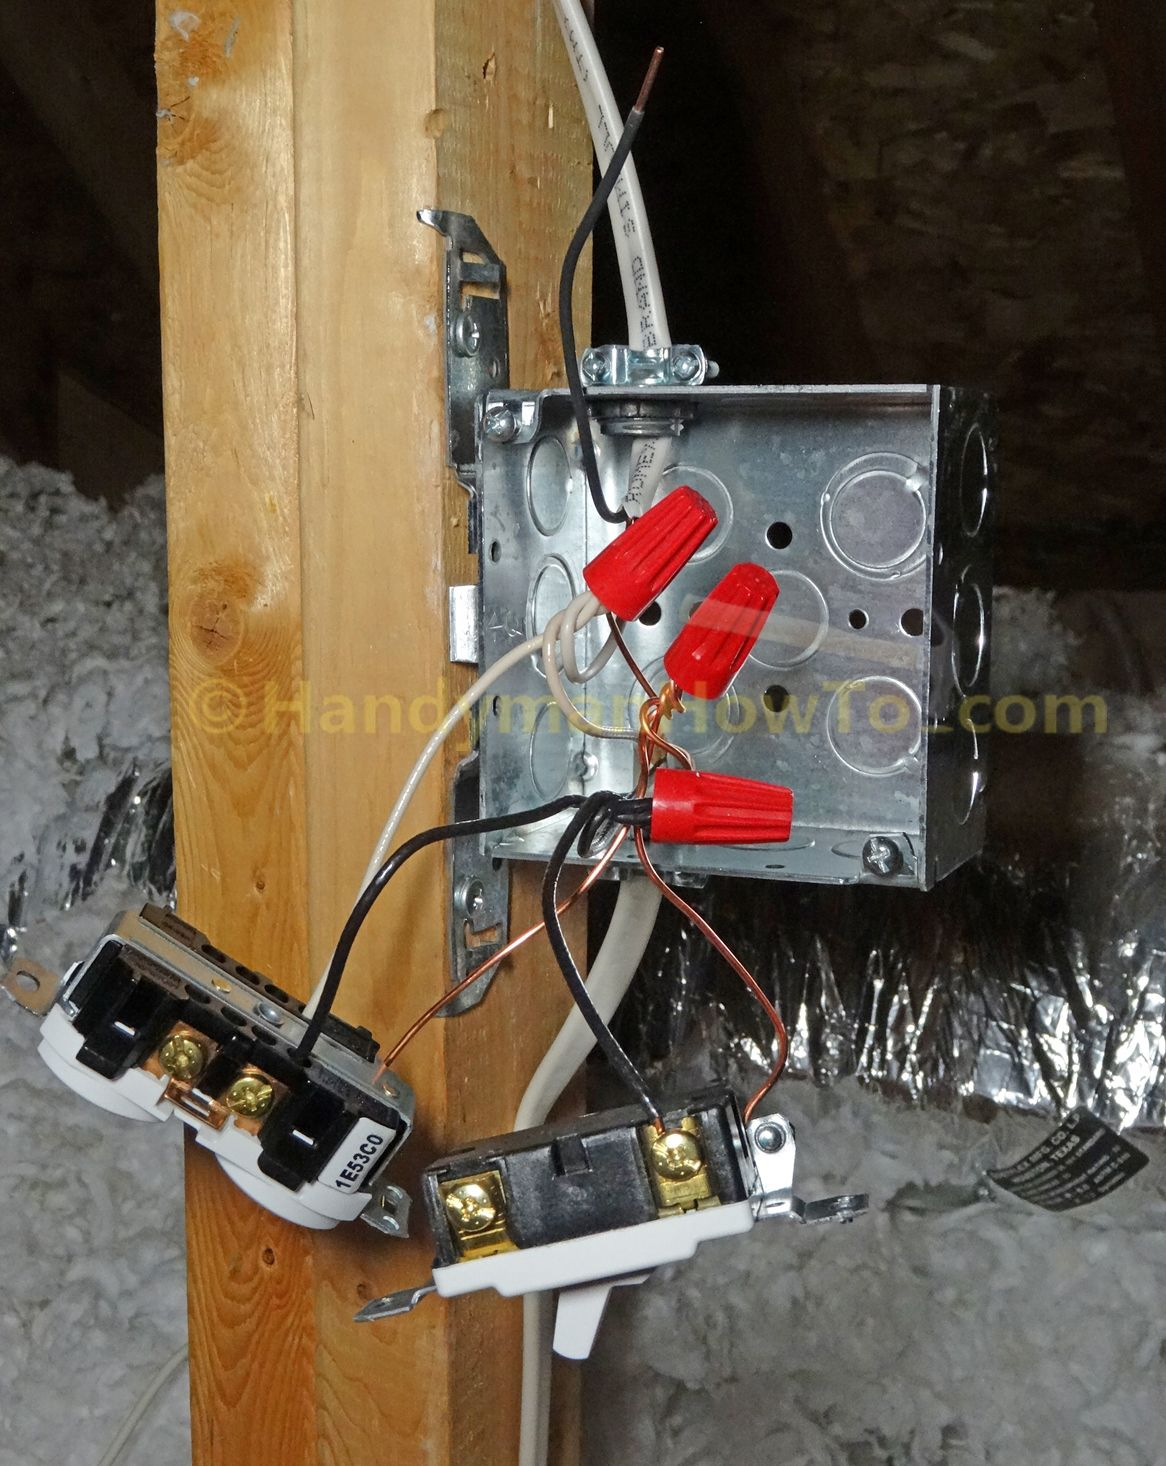 attic light and outlet junction box wiring connections house inattic light and outlet junction box wiring connections